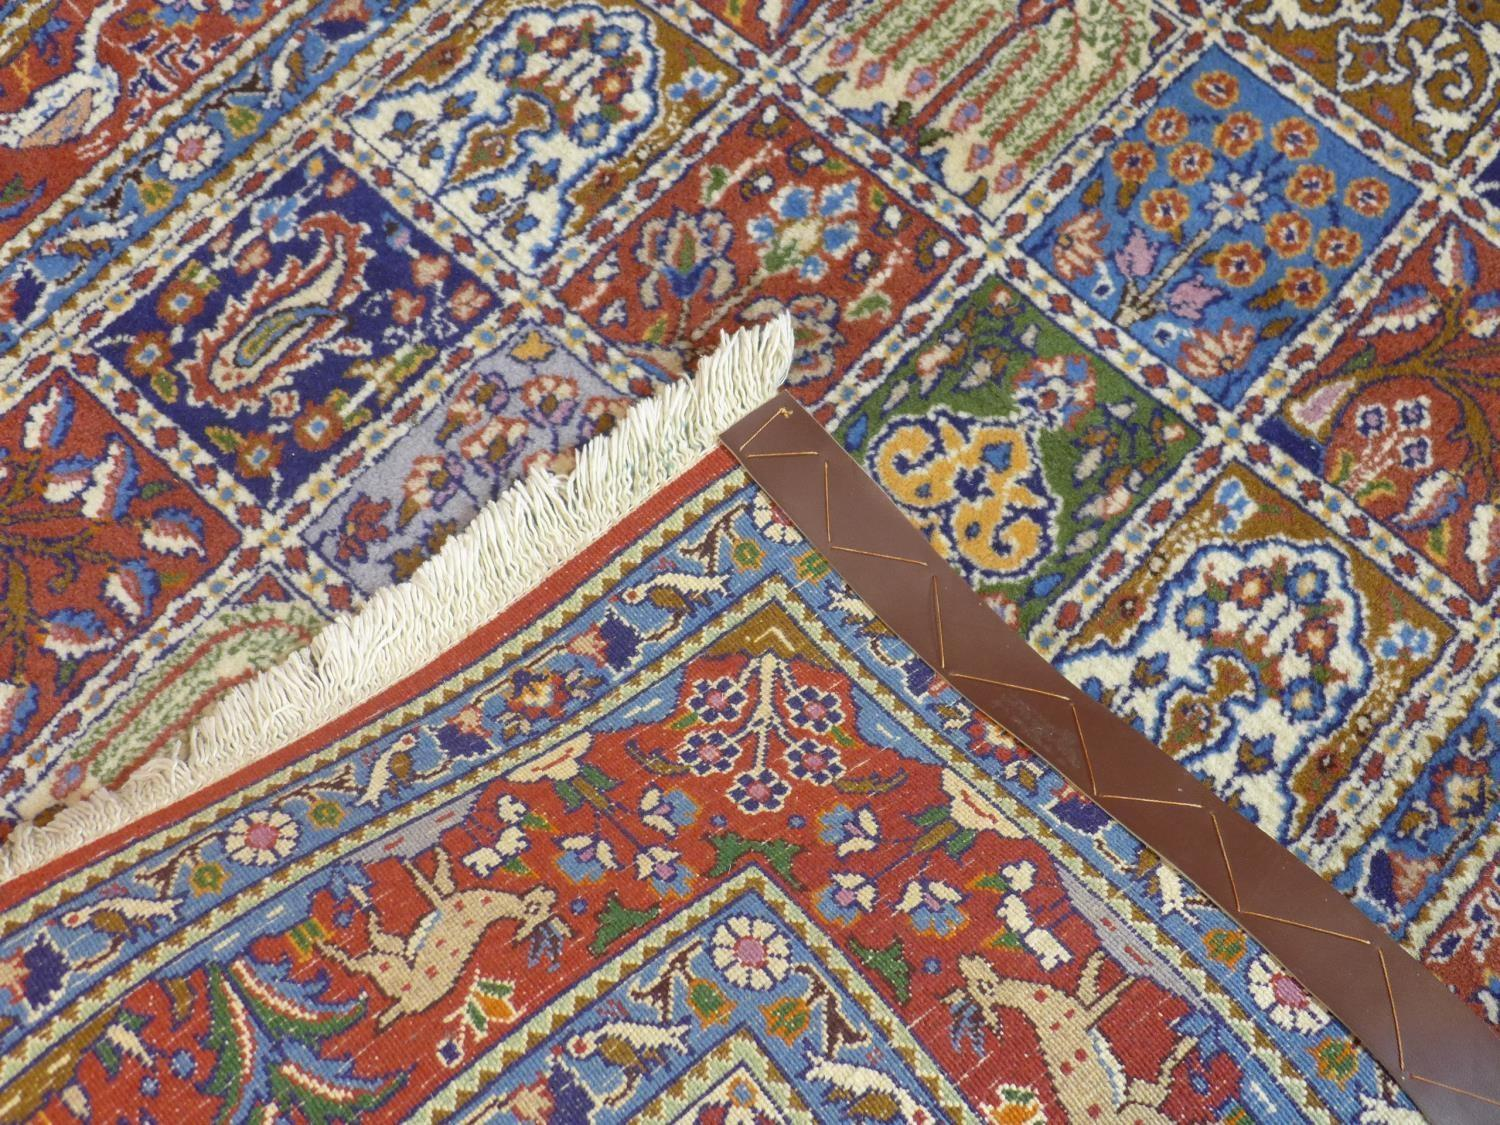 Lot 81 - A Persian rug with repeating tile design with stylised floral motifs, within border with flowers,